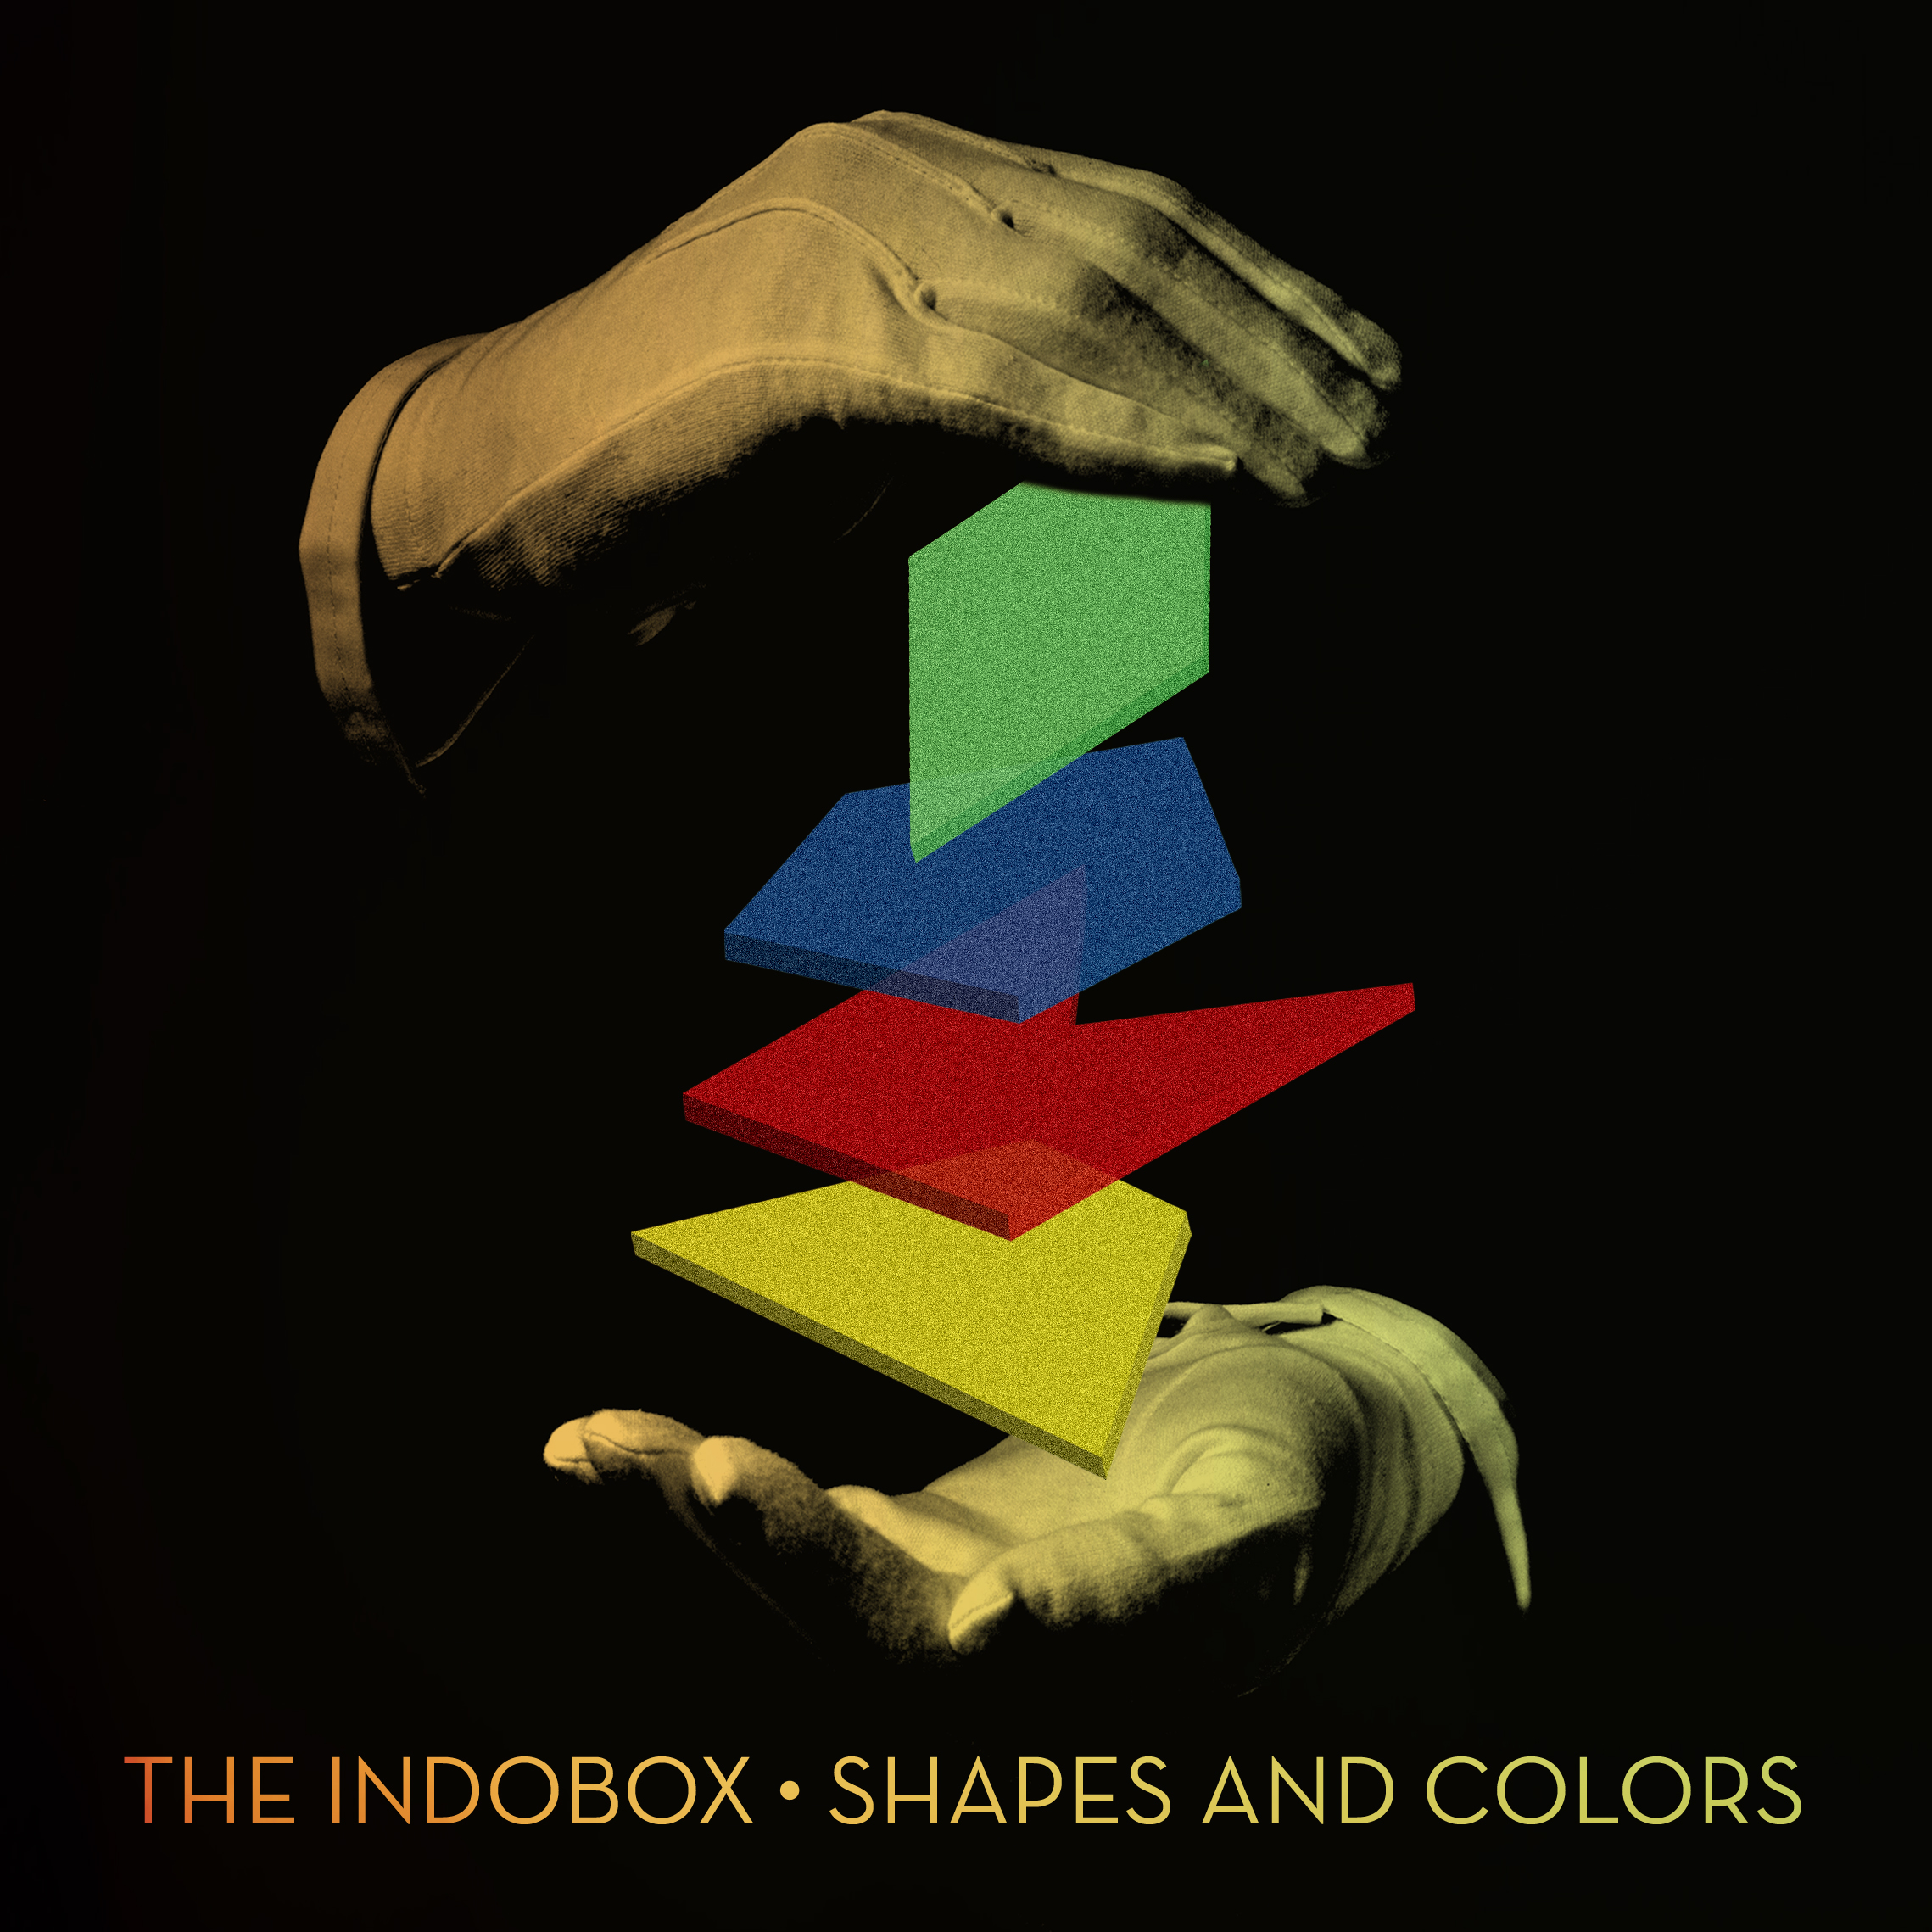 The Indobox Shapes and Colors_A2.jpg